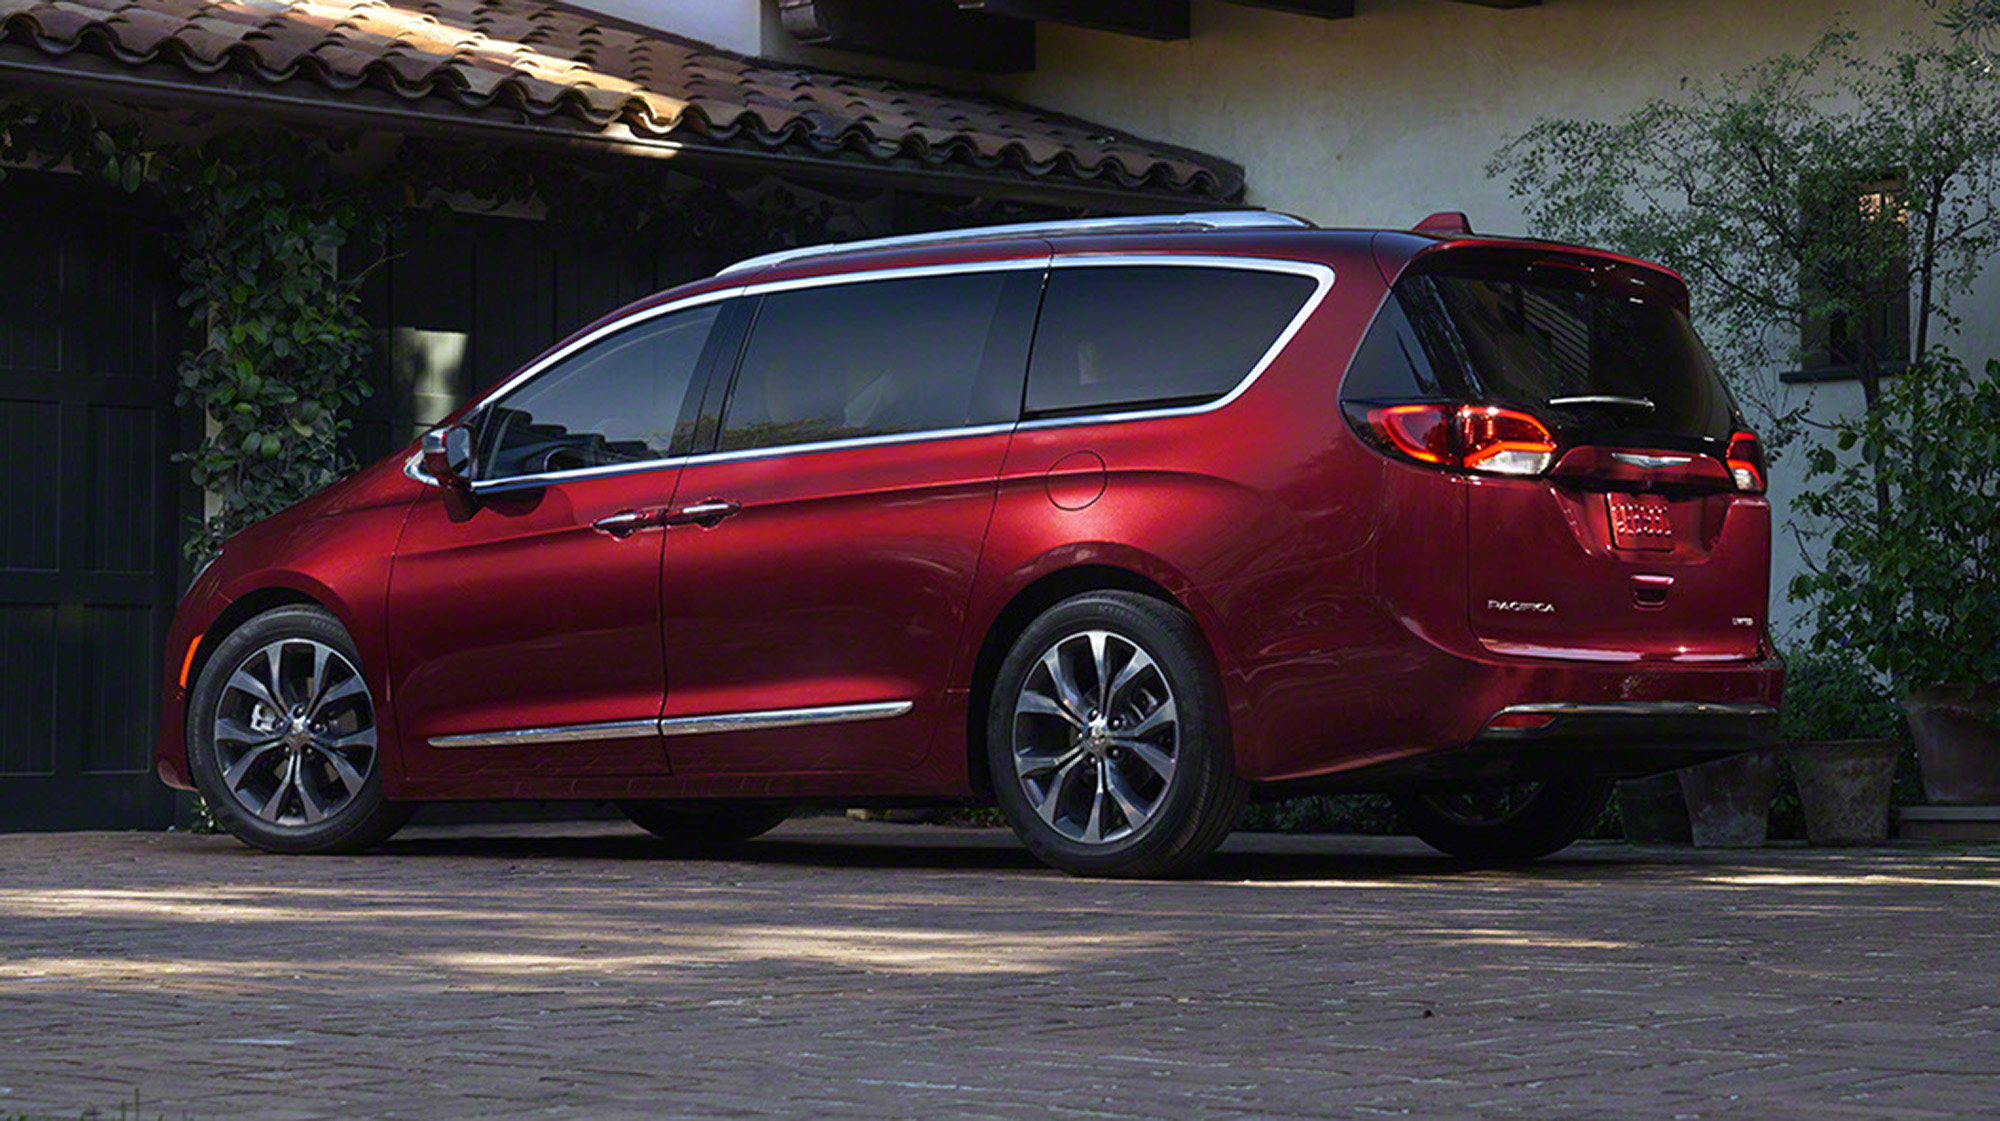 Subaru Older Models >> 2016 Chrysler Pacifica: Grand Voyager replacement appears in Detroit - photos | CarAdvice